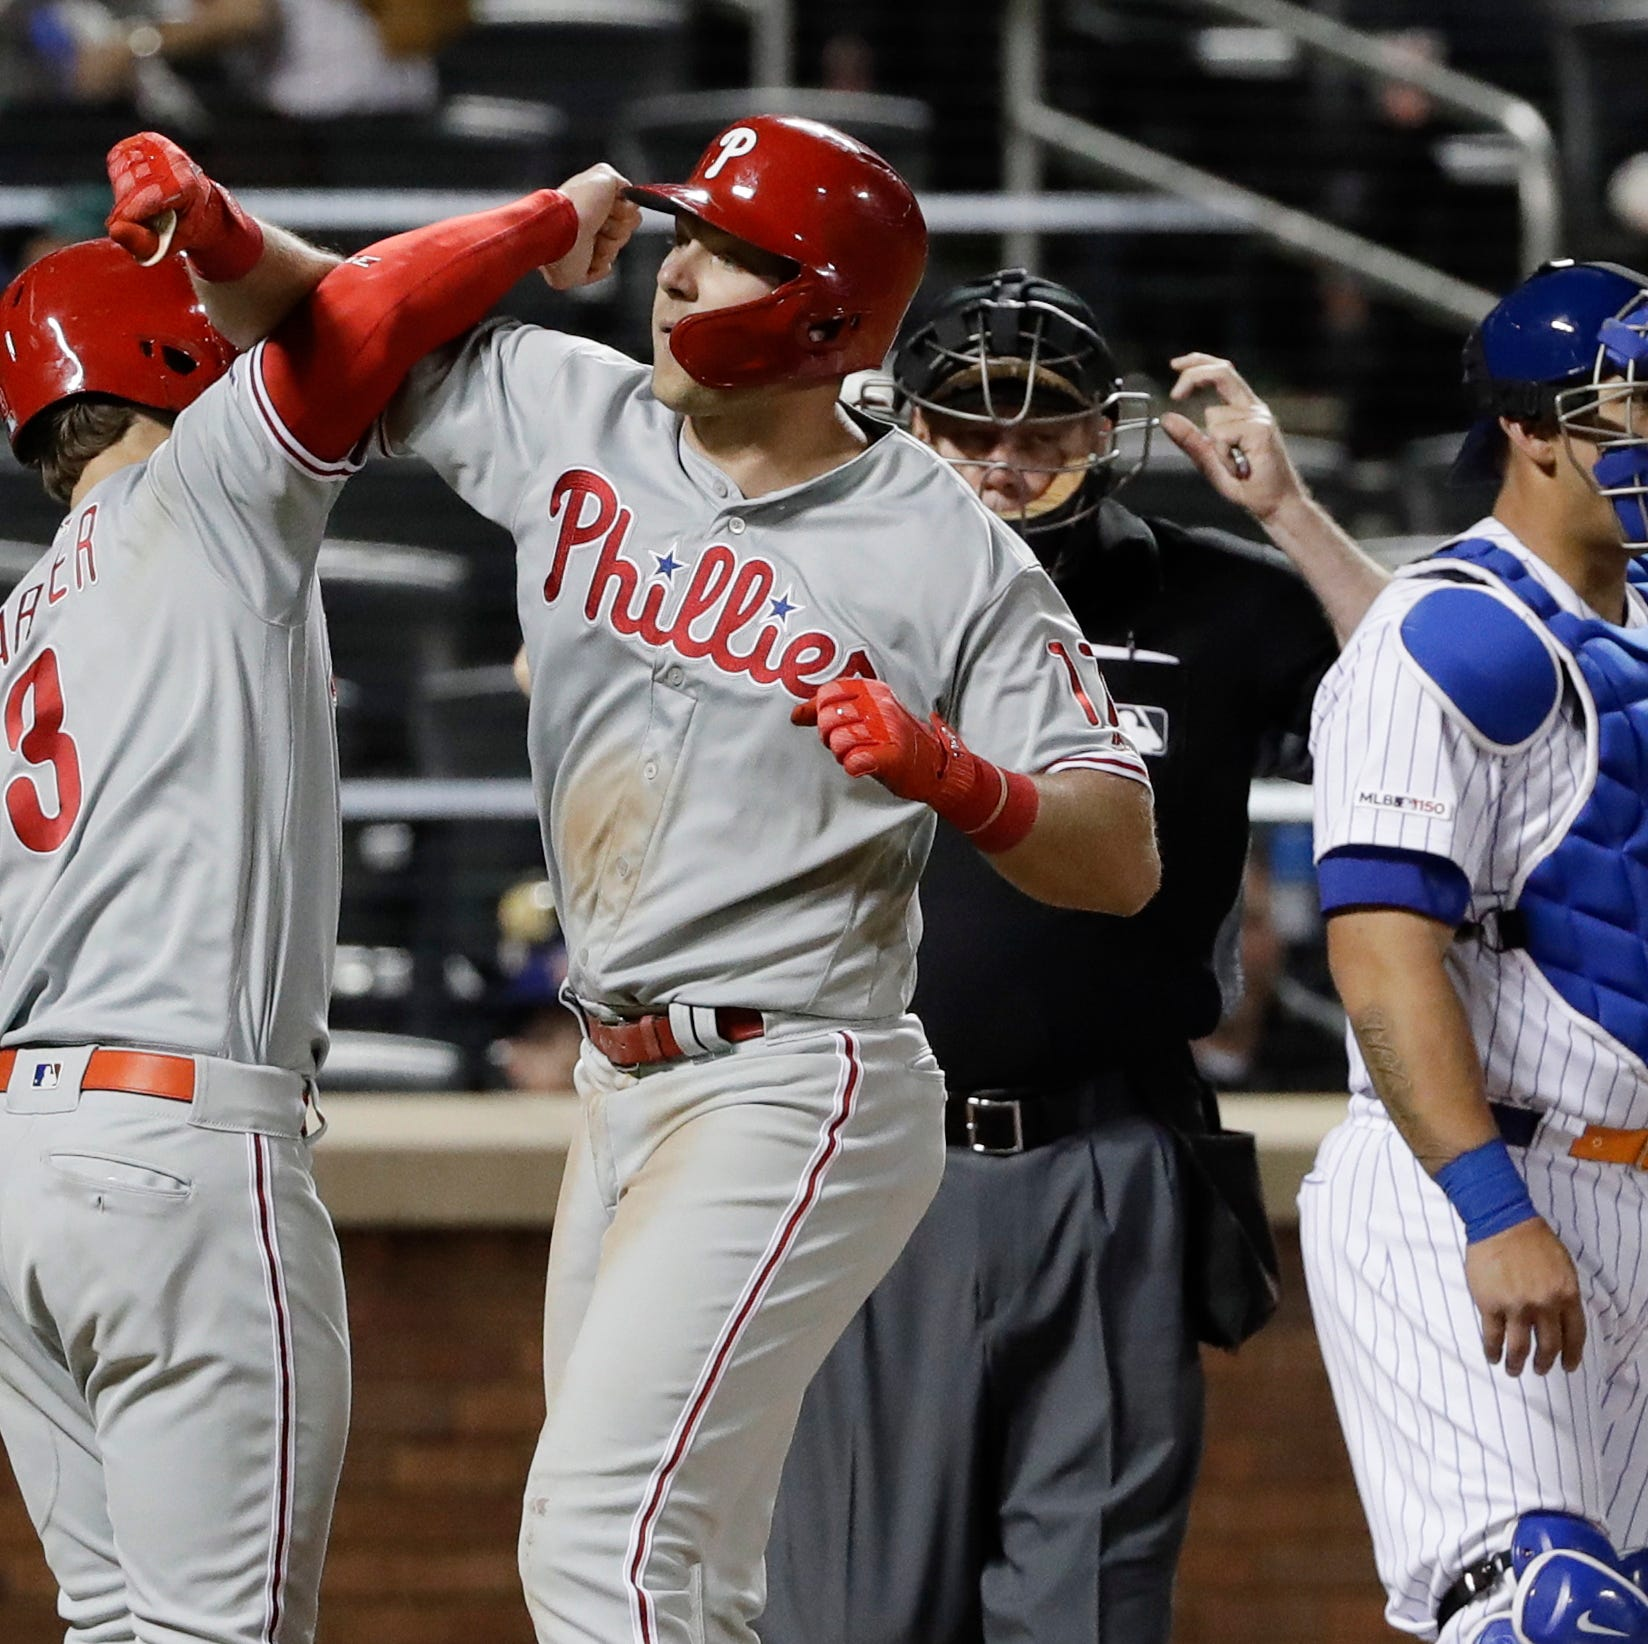 Mets fail to complete sweep of Phillies thanks to poor defense